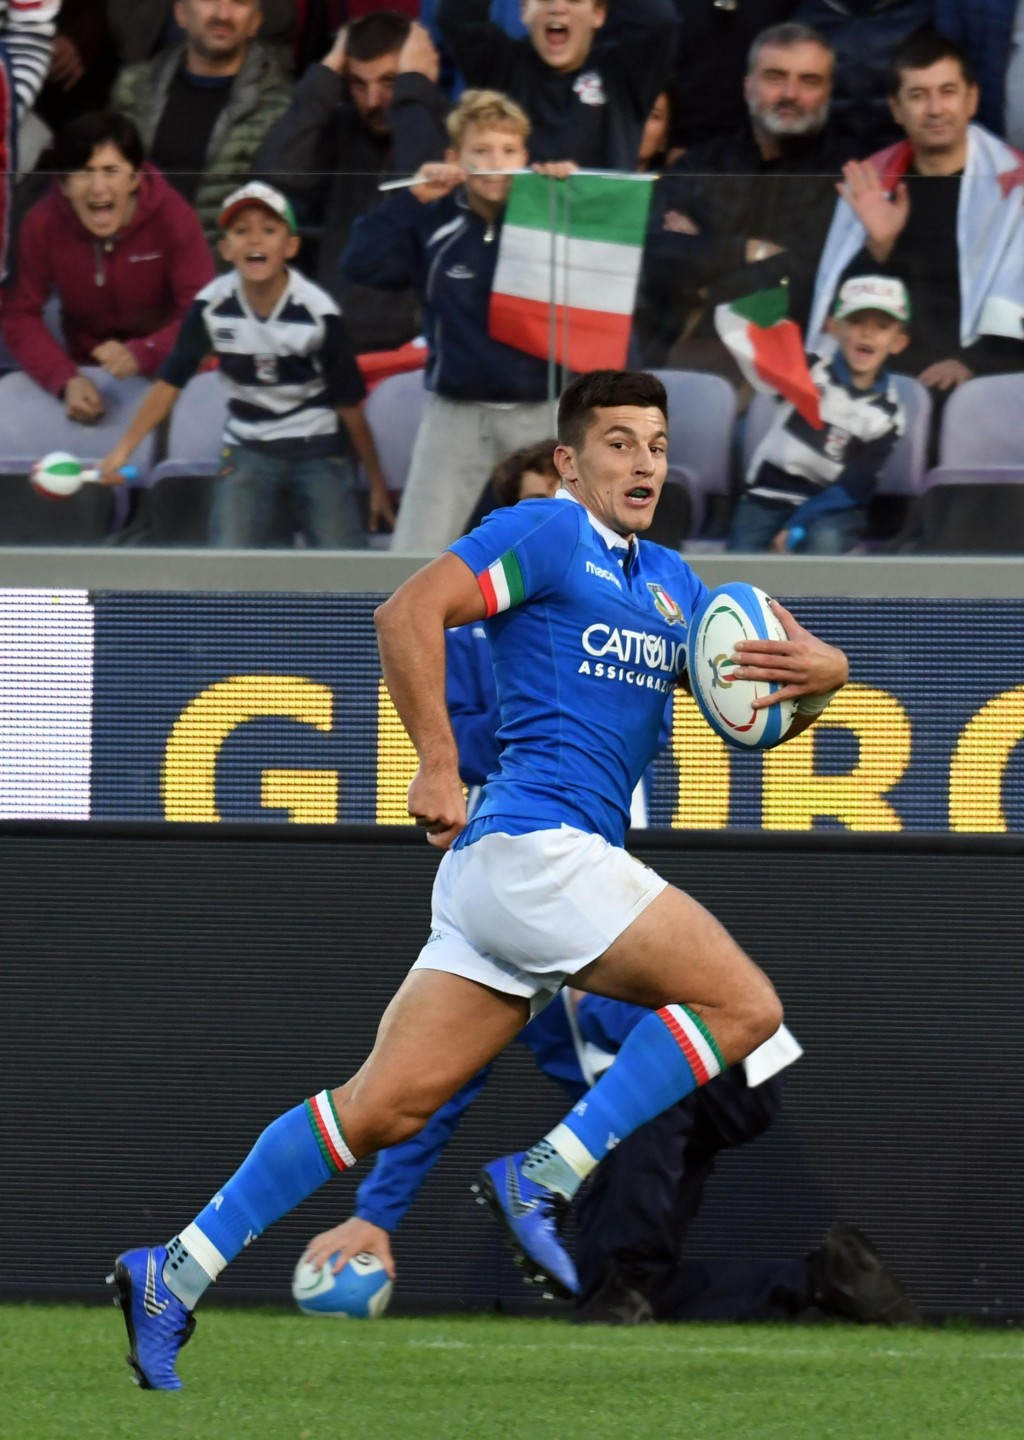 Italy's Tommaso Allan runs on his way to score a try during an international union rugby match between Italy and Georgia, at the Artemio Franchi stadi